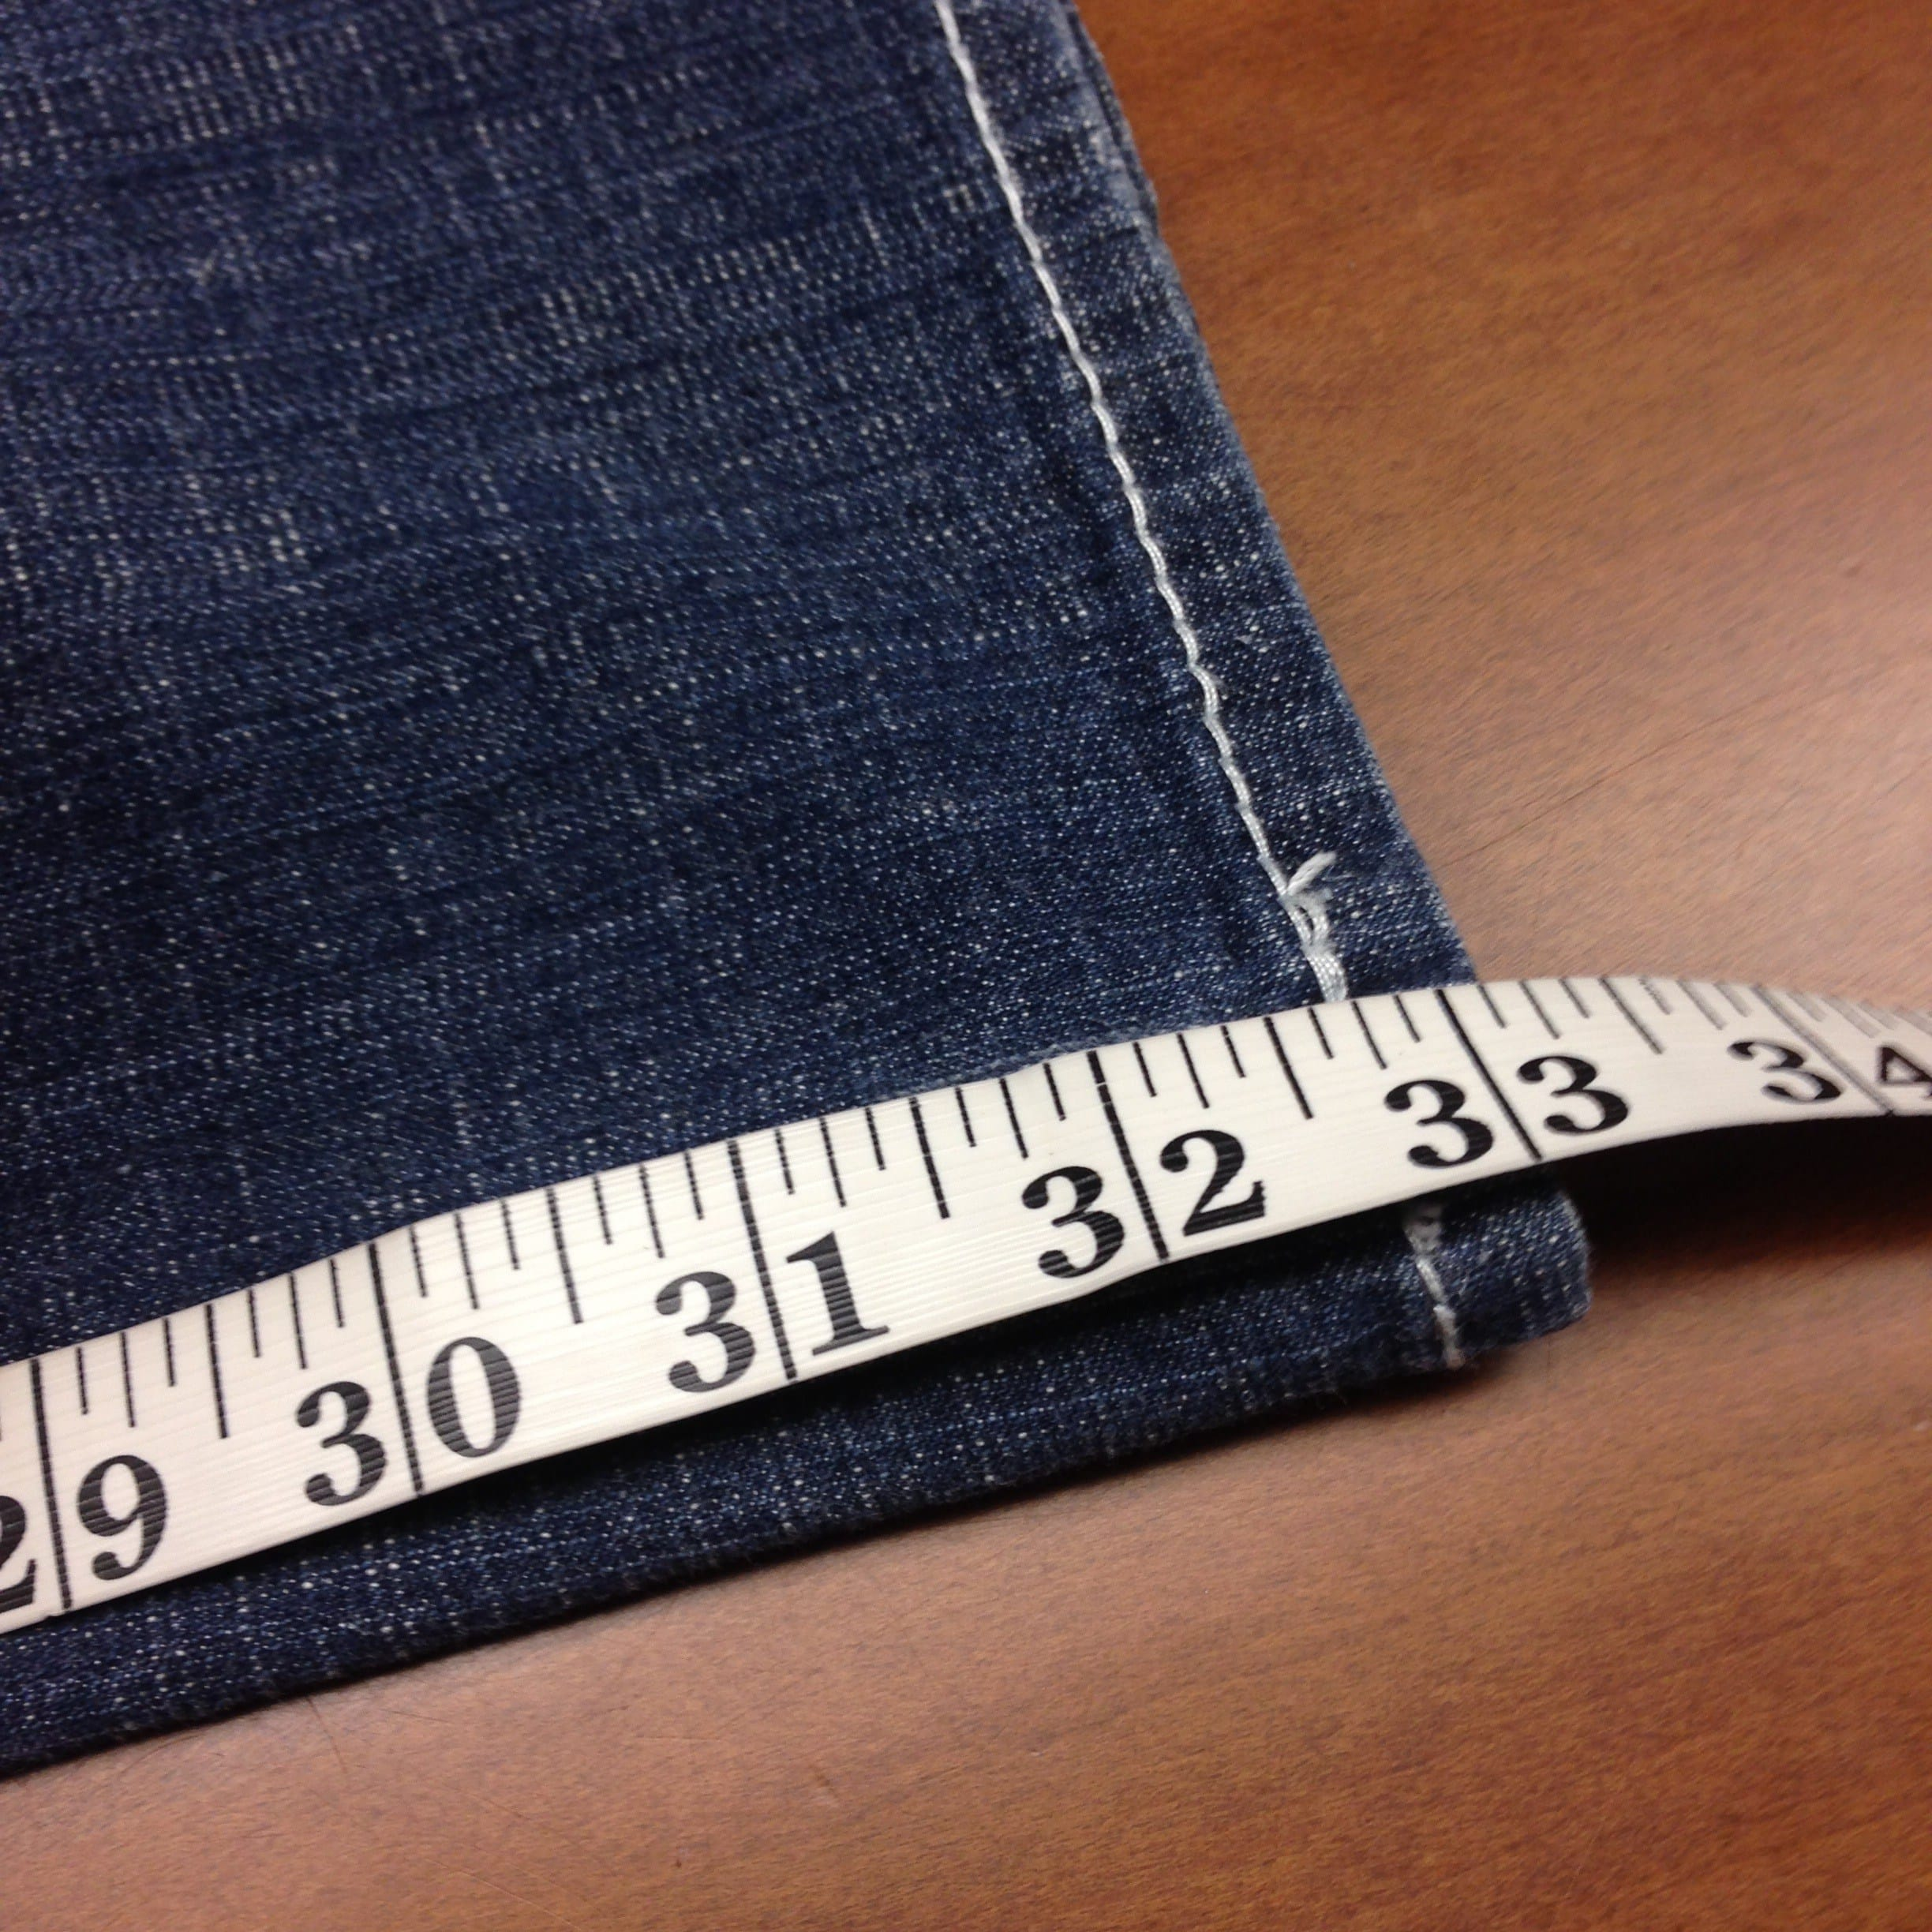 measuring-for-hemming-your-jeans